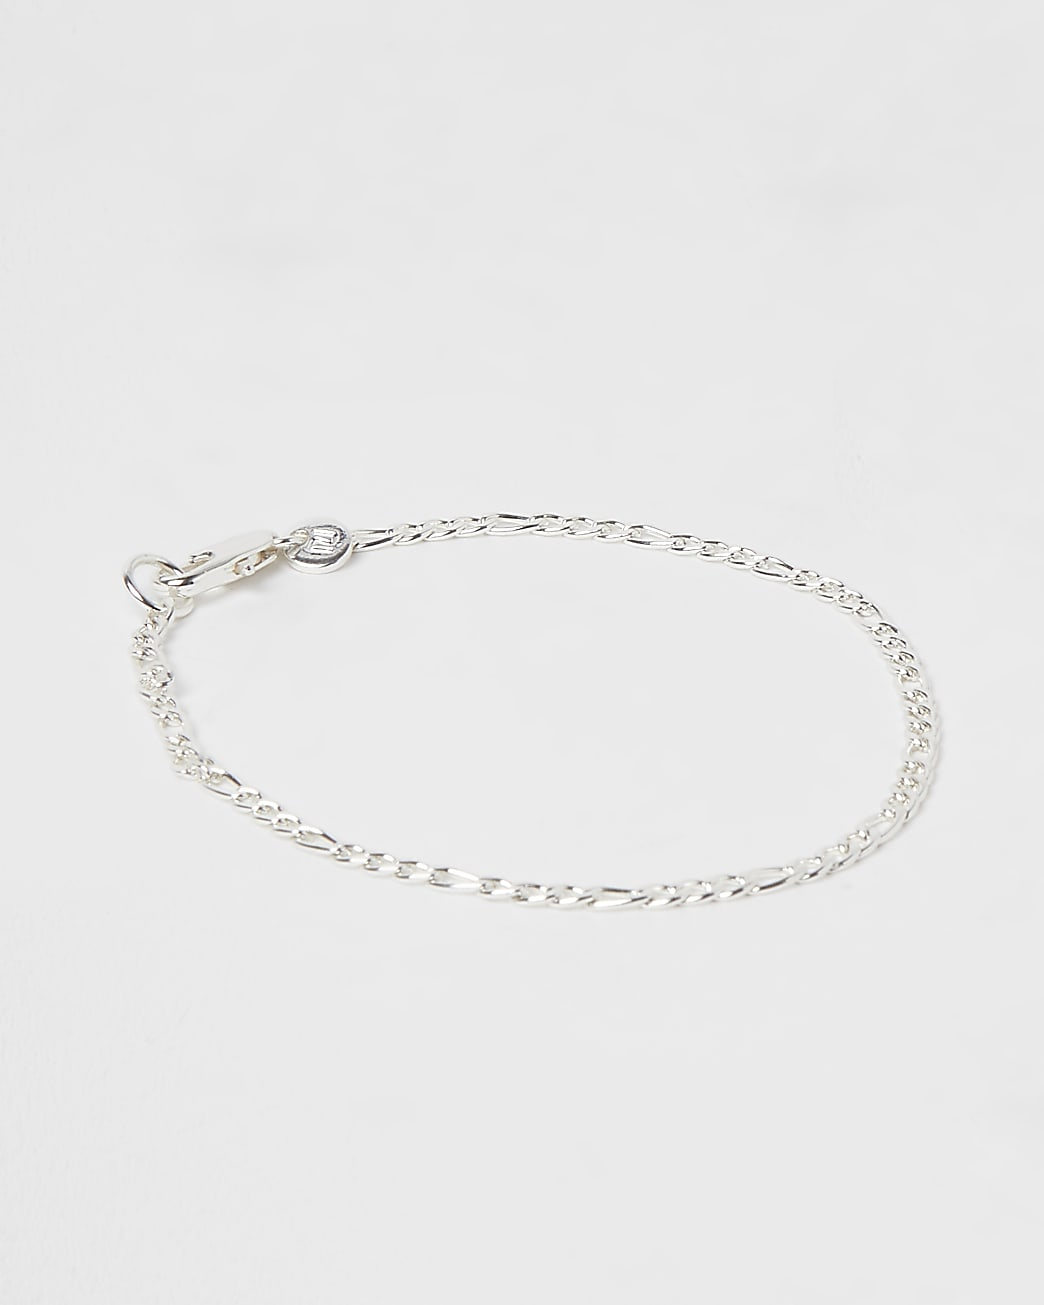 Silver stainless steel curb chain bracelet